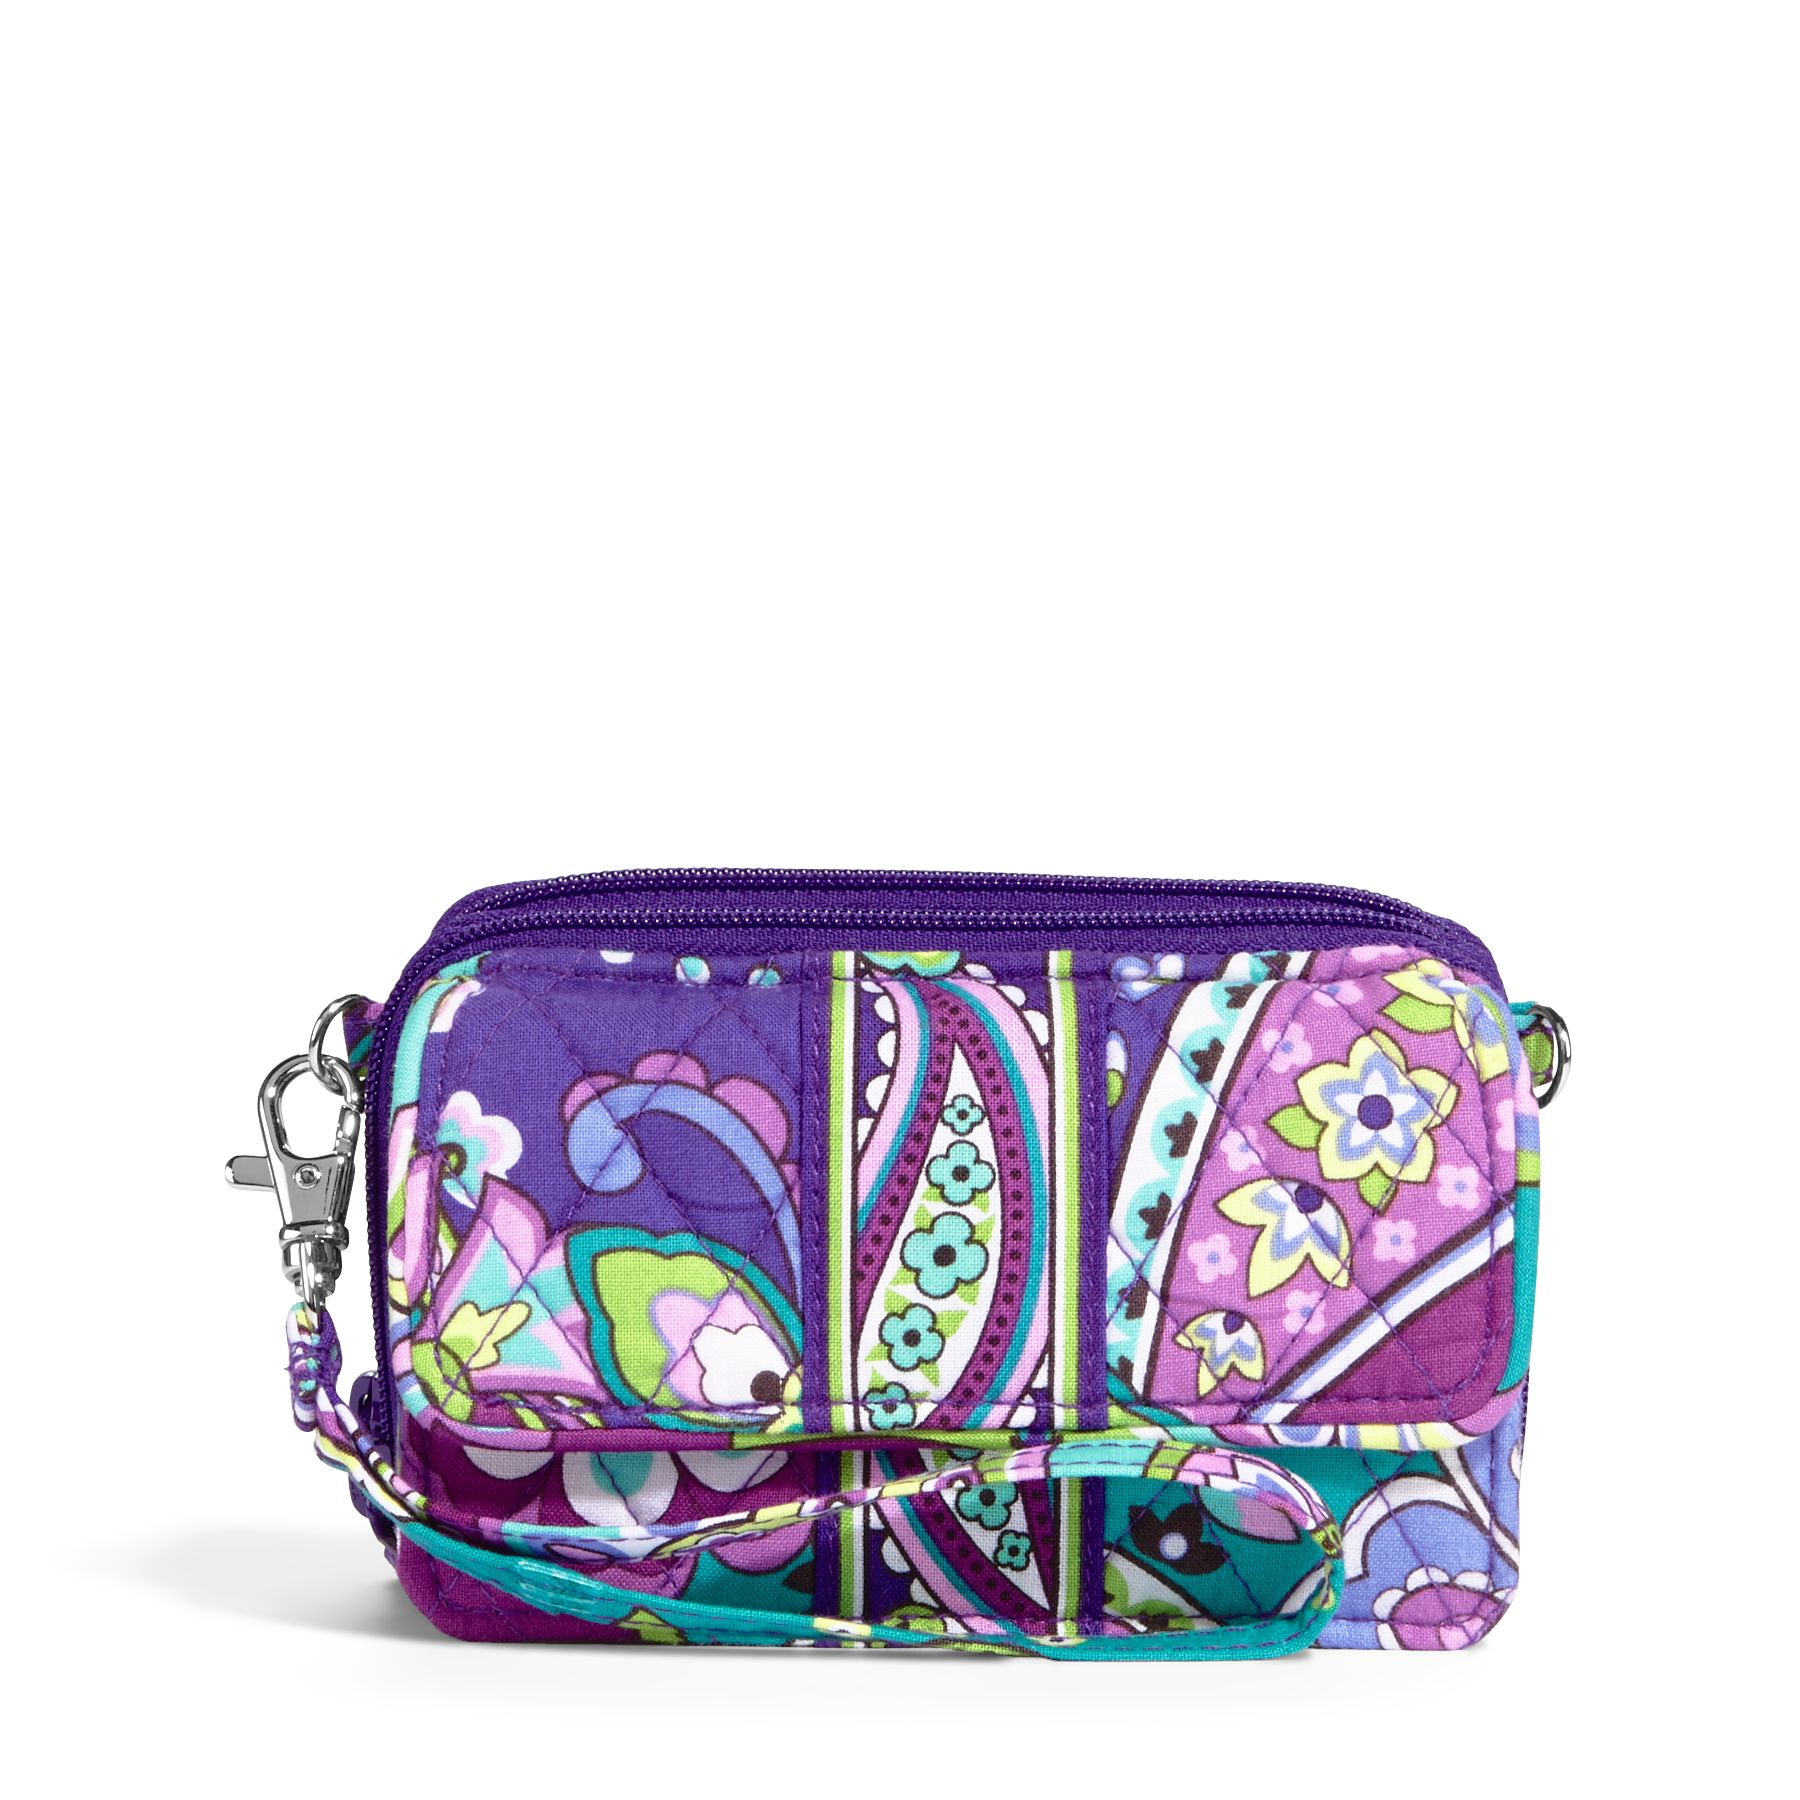 Vera Bradley All in One Crossbody and Wristlet in Heather